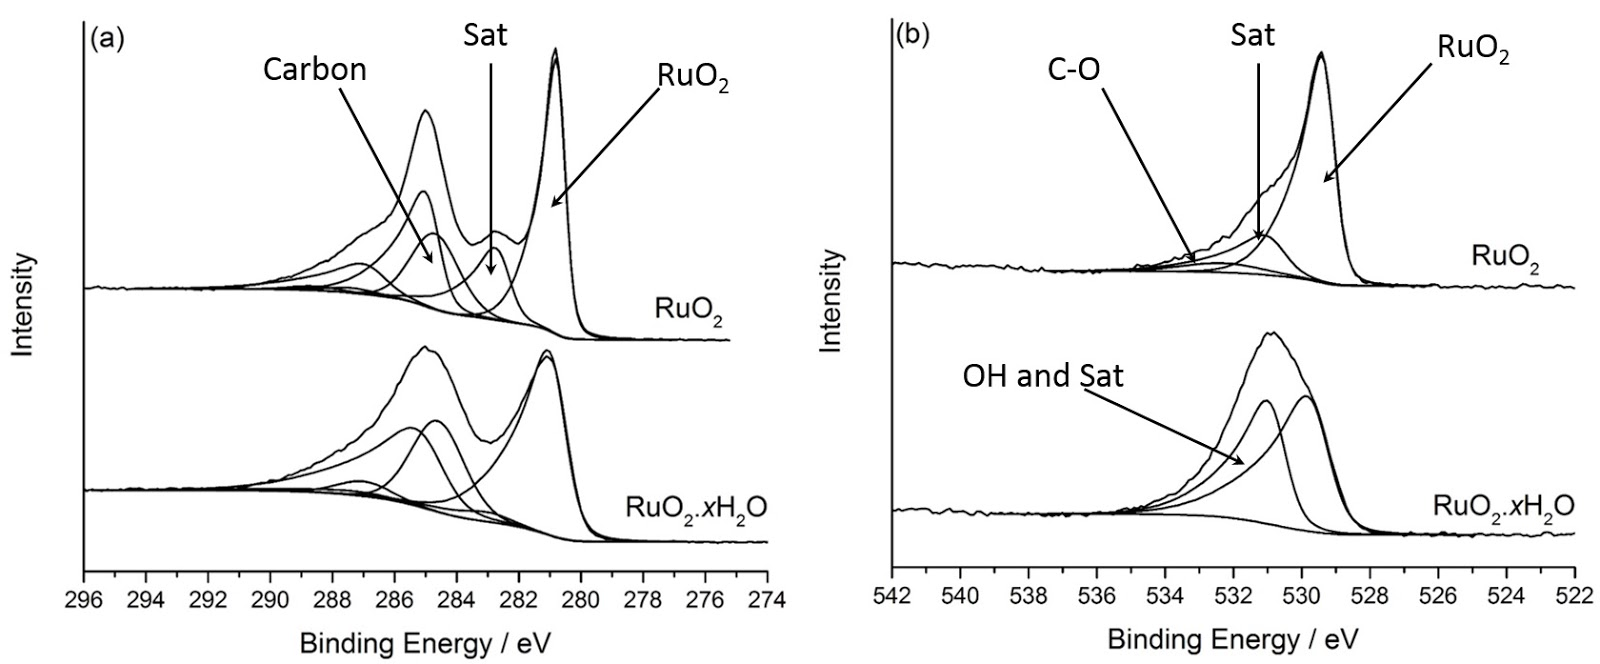 hight resolution of figure 2 fitted a ru 3d spectra fro ruo2 xh2o and anhydrous ruo2 and b o 1s spectra 1